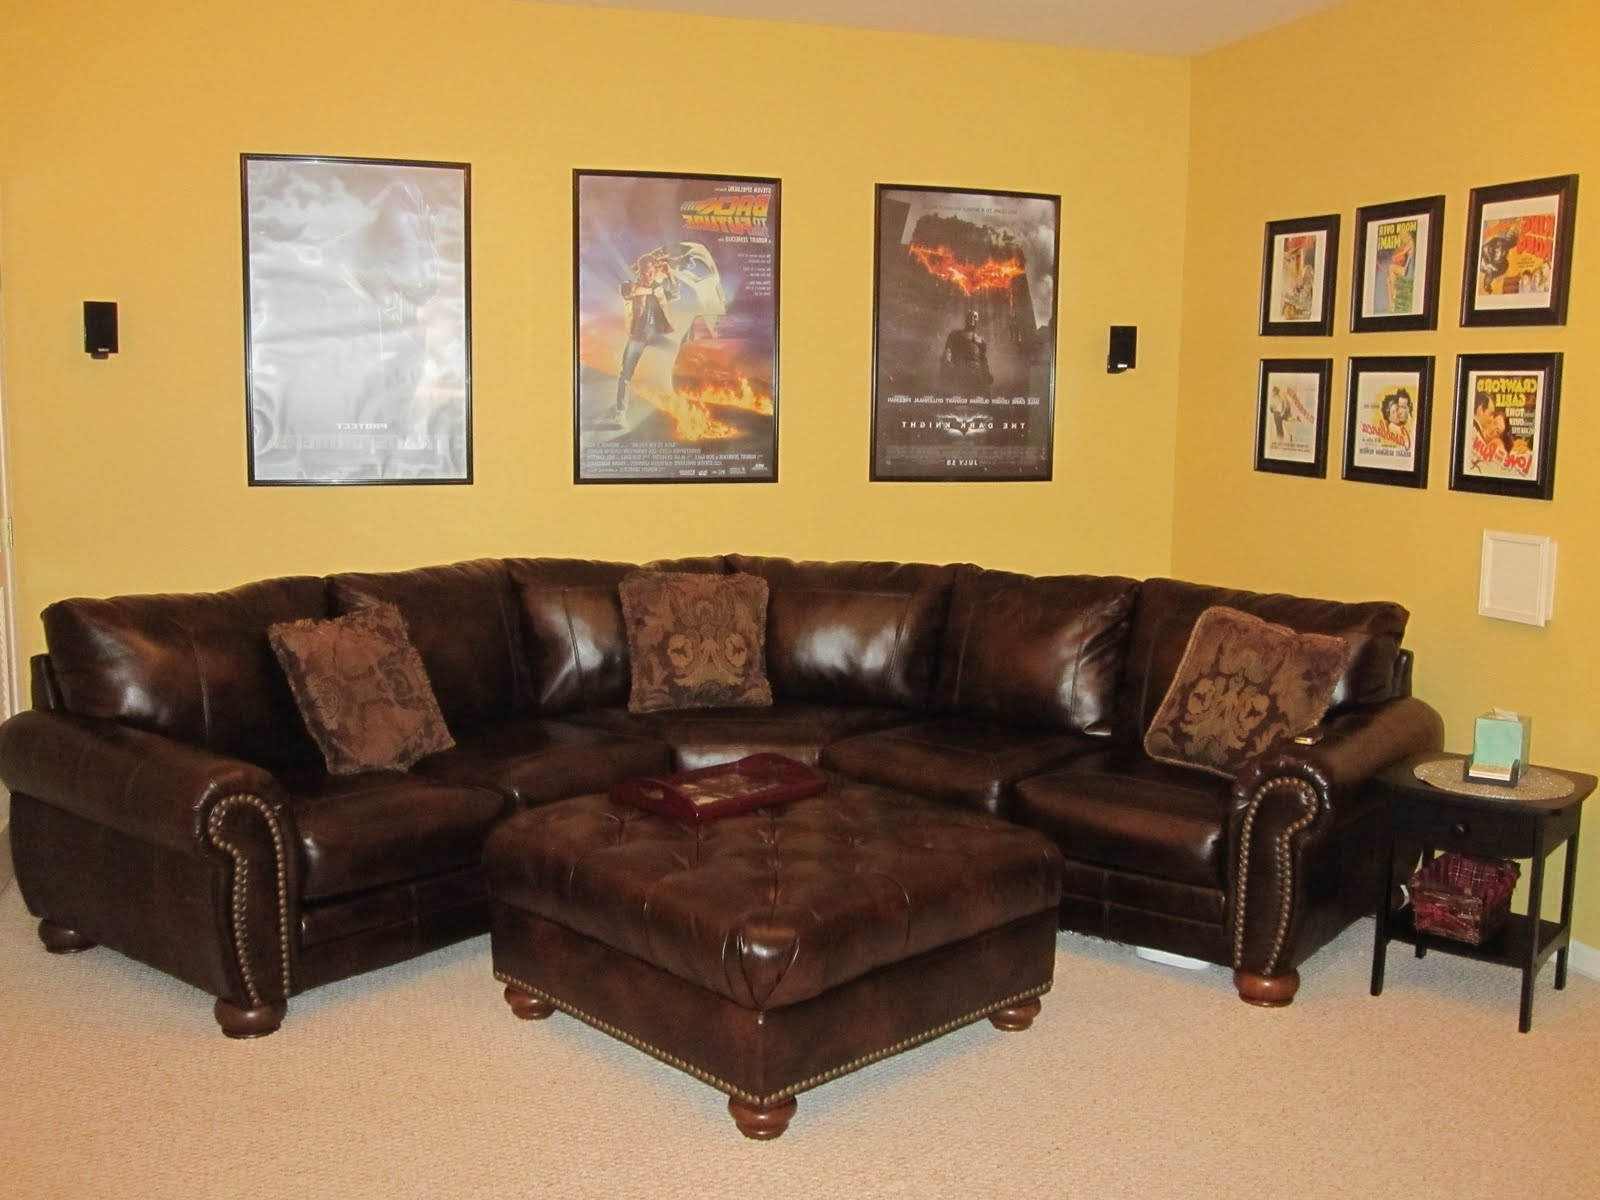 Sofas : Red Leather Sectional Sofa With Recliners Small Sectional Within Well Liked Small Red Leather Sectional Sofas (View 7 of 15)